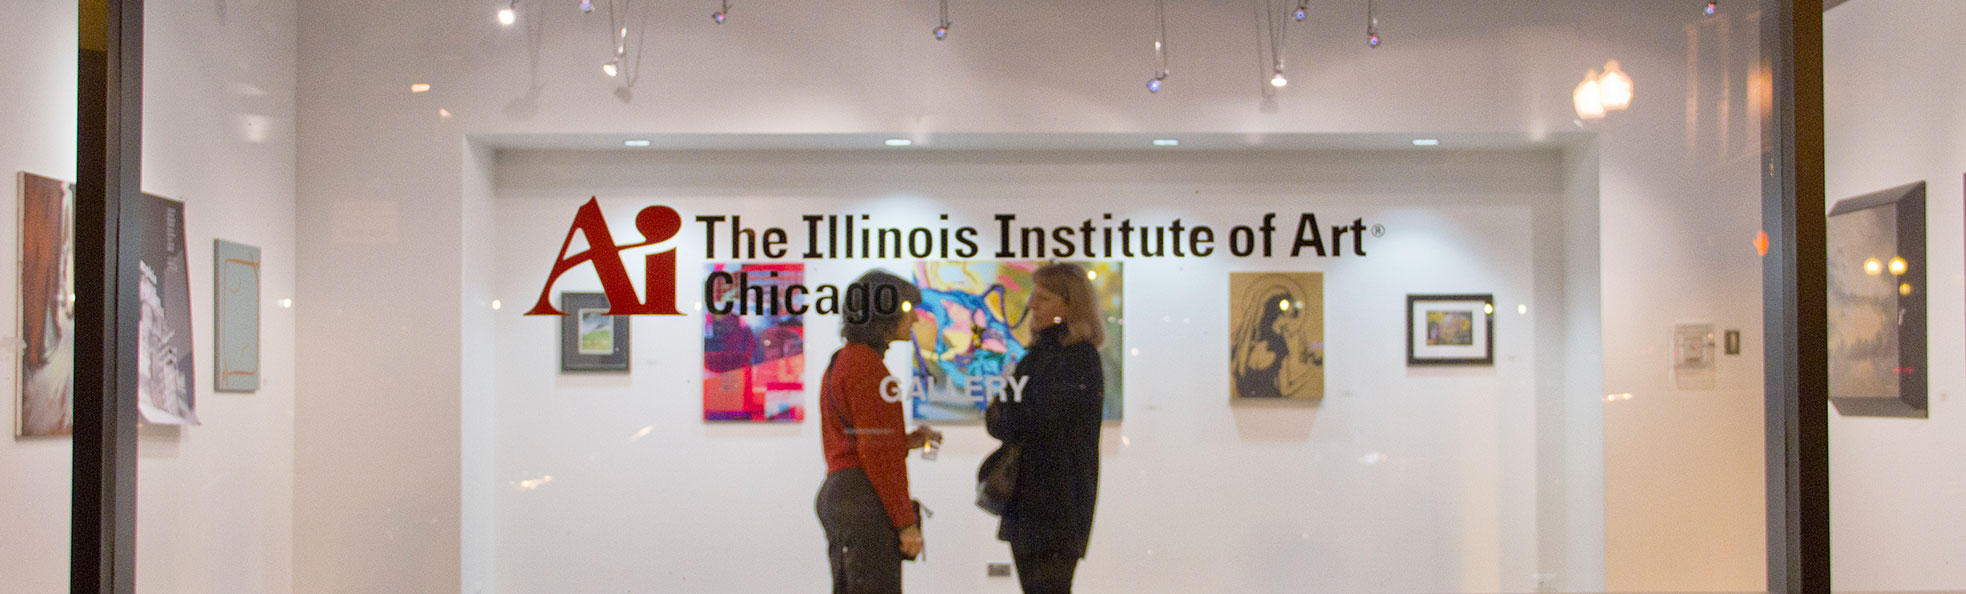 The Illinois Institute of Art—Chicago-Contact Us